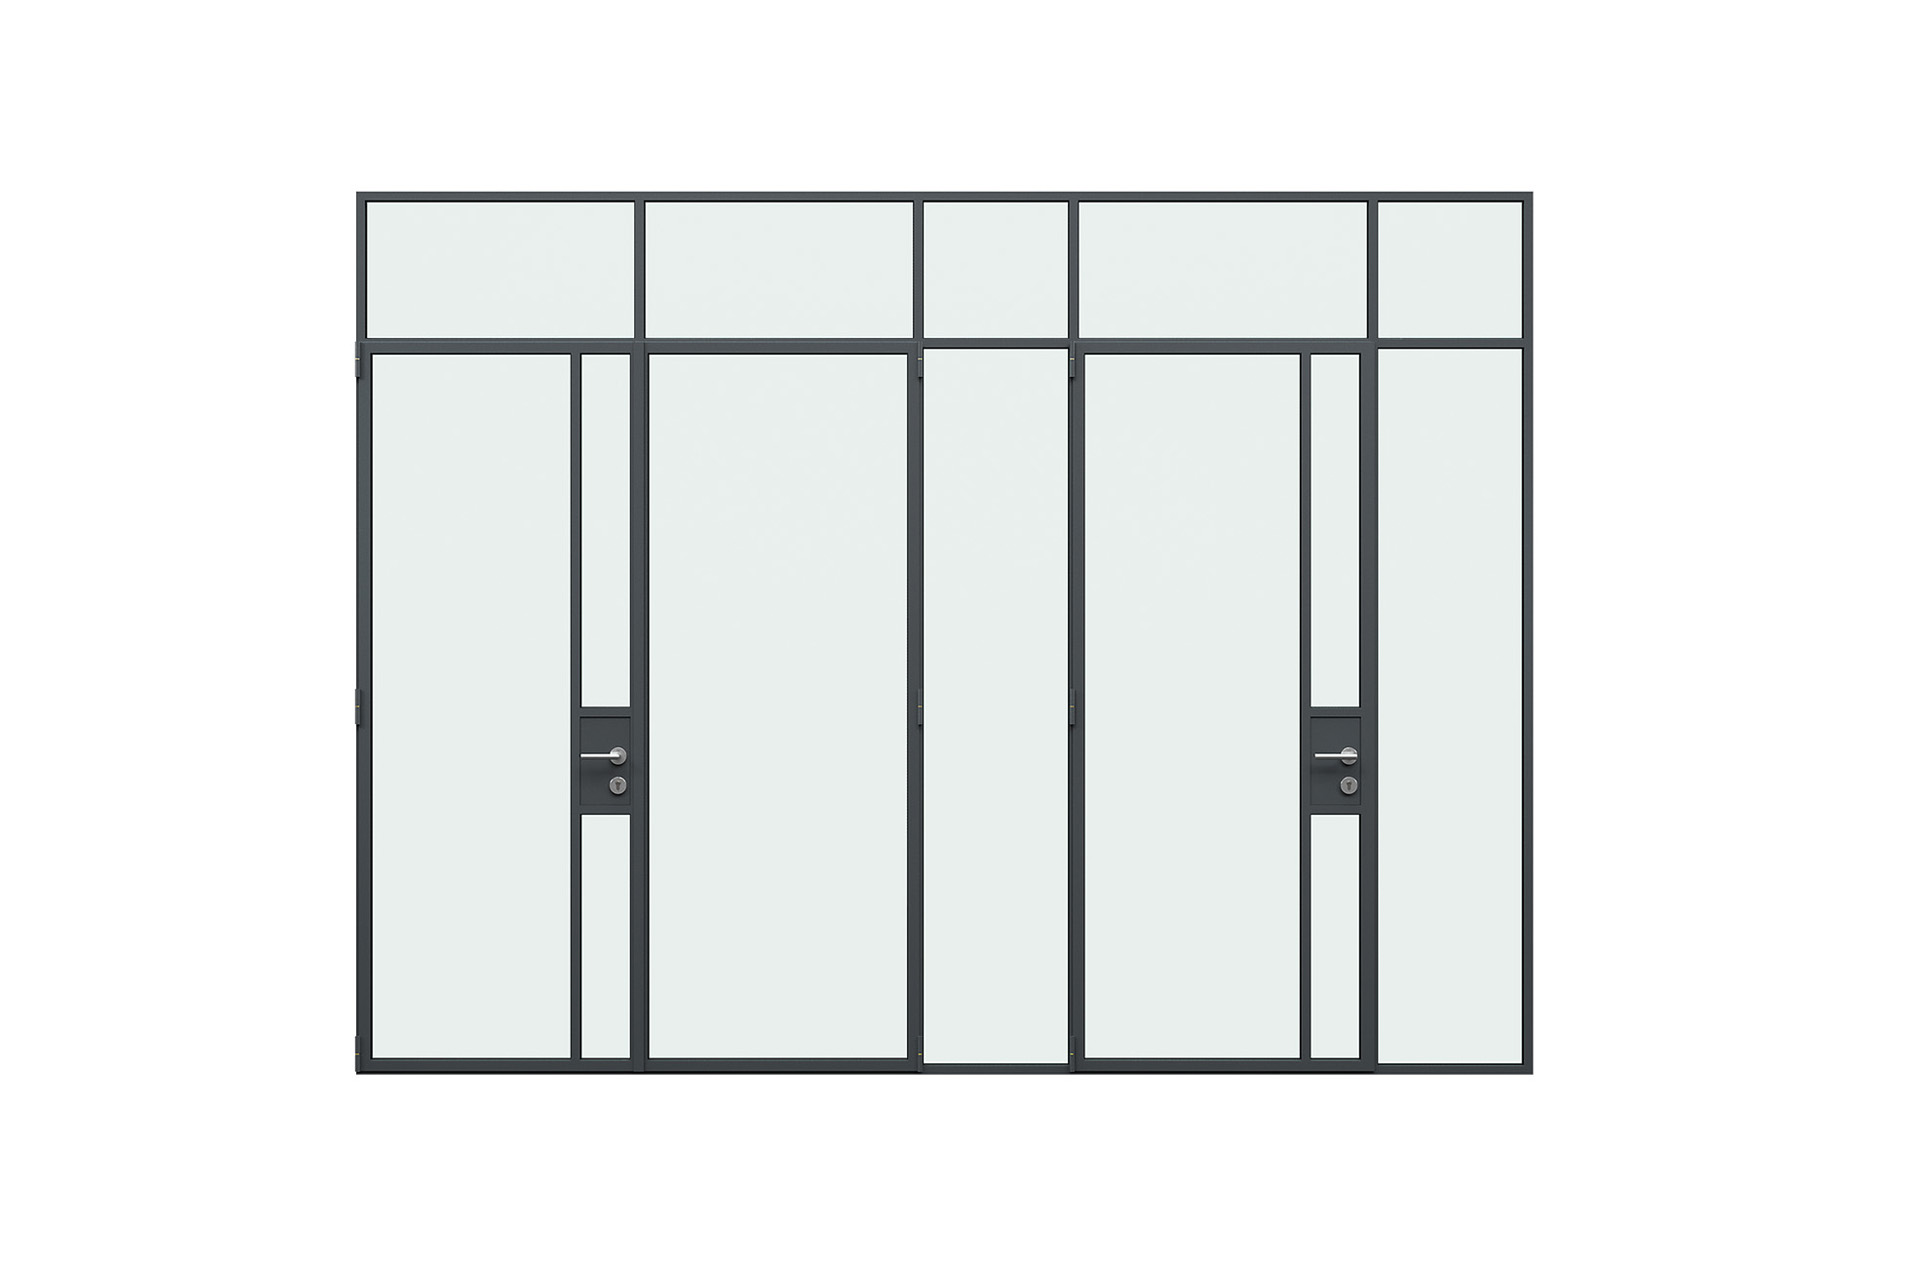 3d rendering front view of MHB steel lock case doors